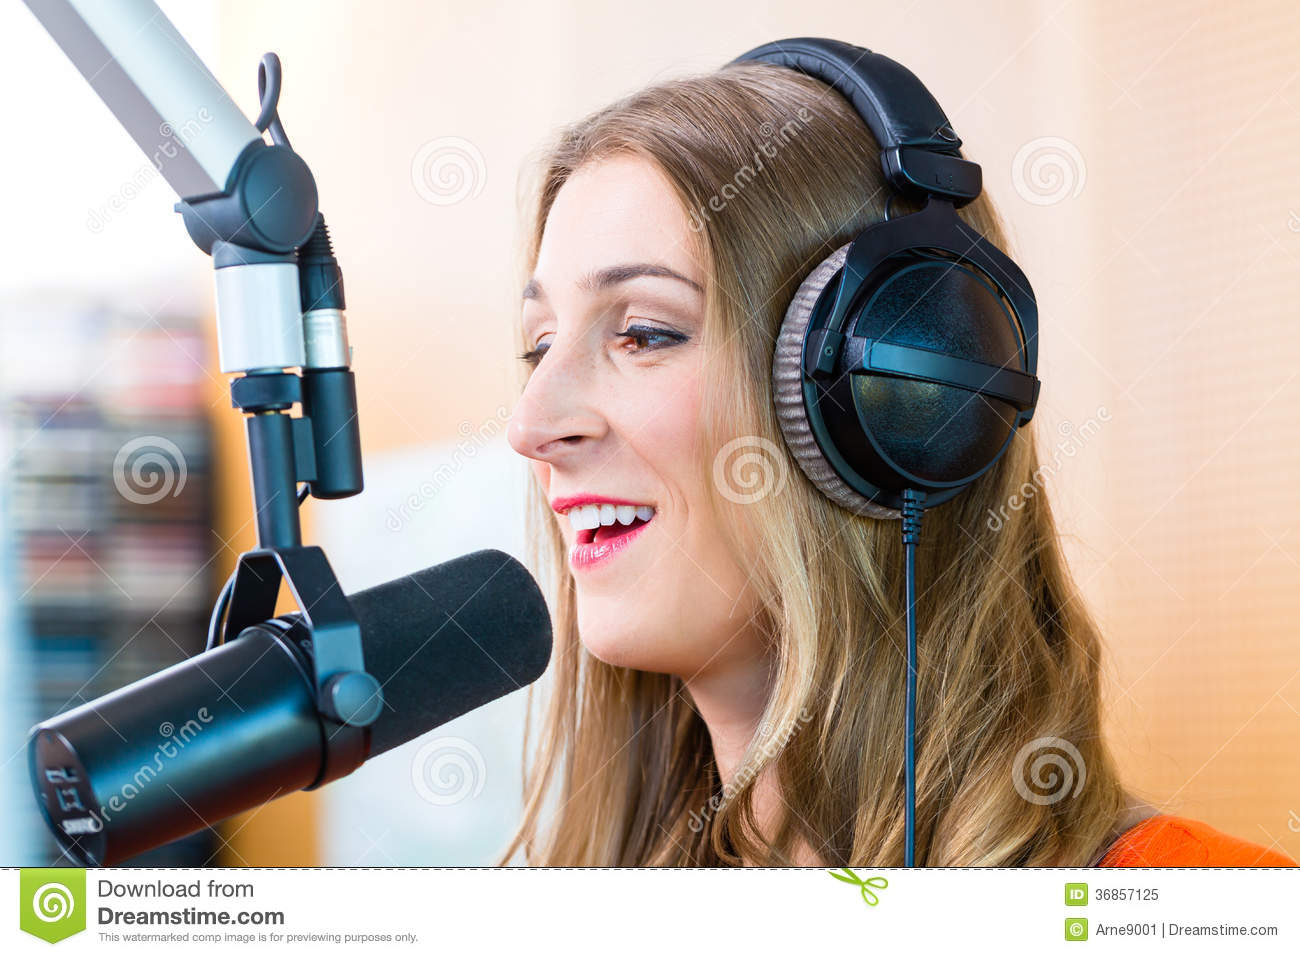 female-radio-presenter-radio-station-air-host-hosting-show-live-studio-36857125.jpg